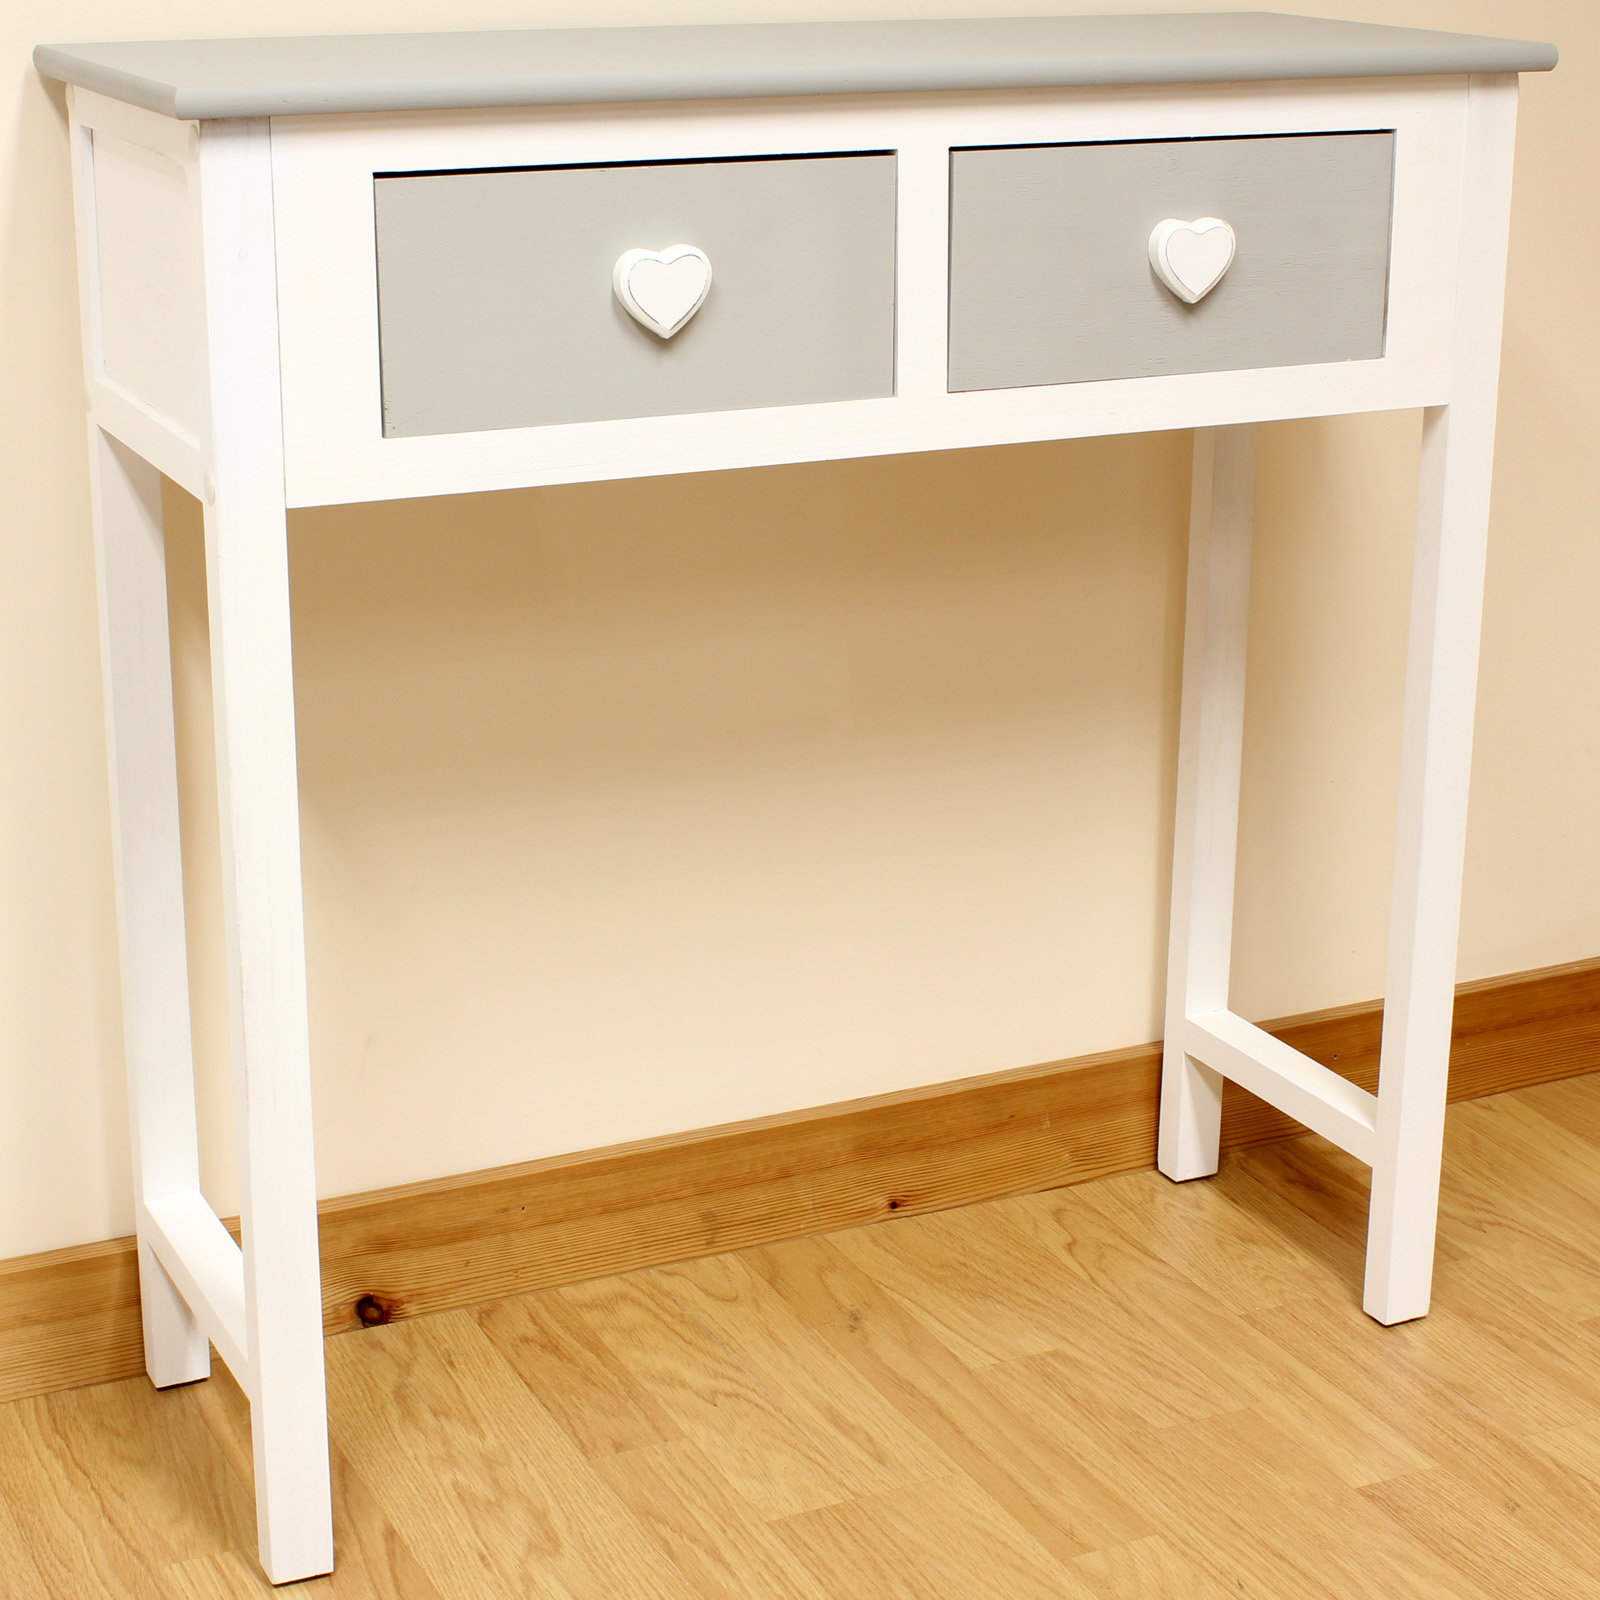 Sentinel 2 Drawer Dressing Table Grey U0026 White/Heart Handles/Girls/Childrens Console  Table